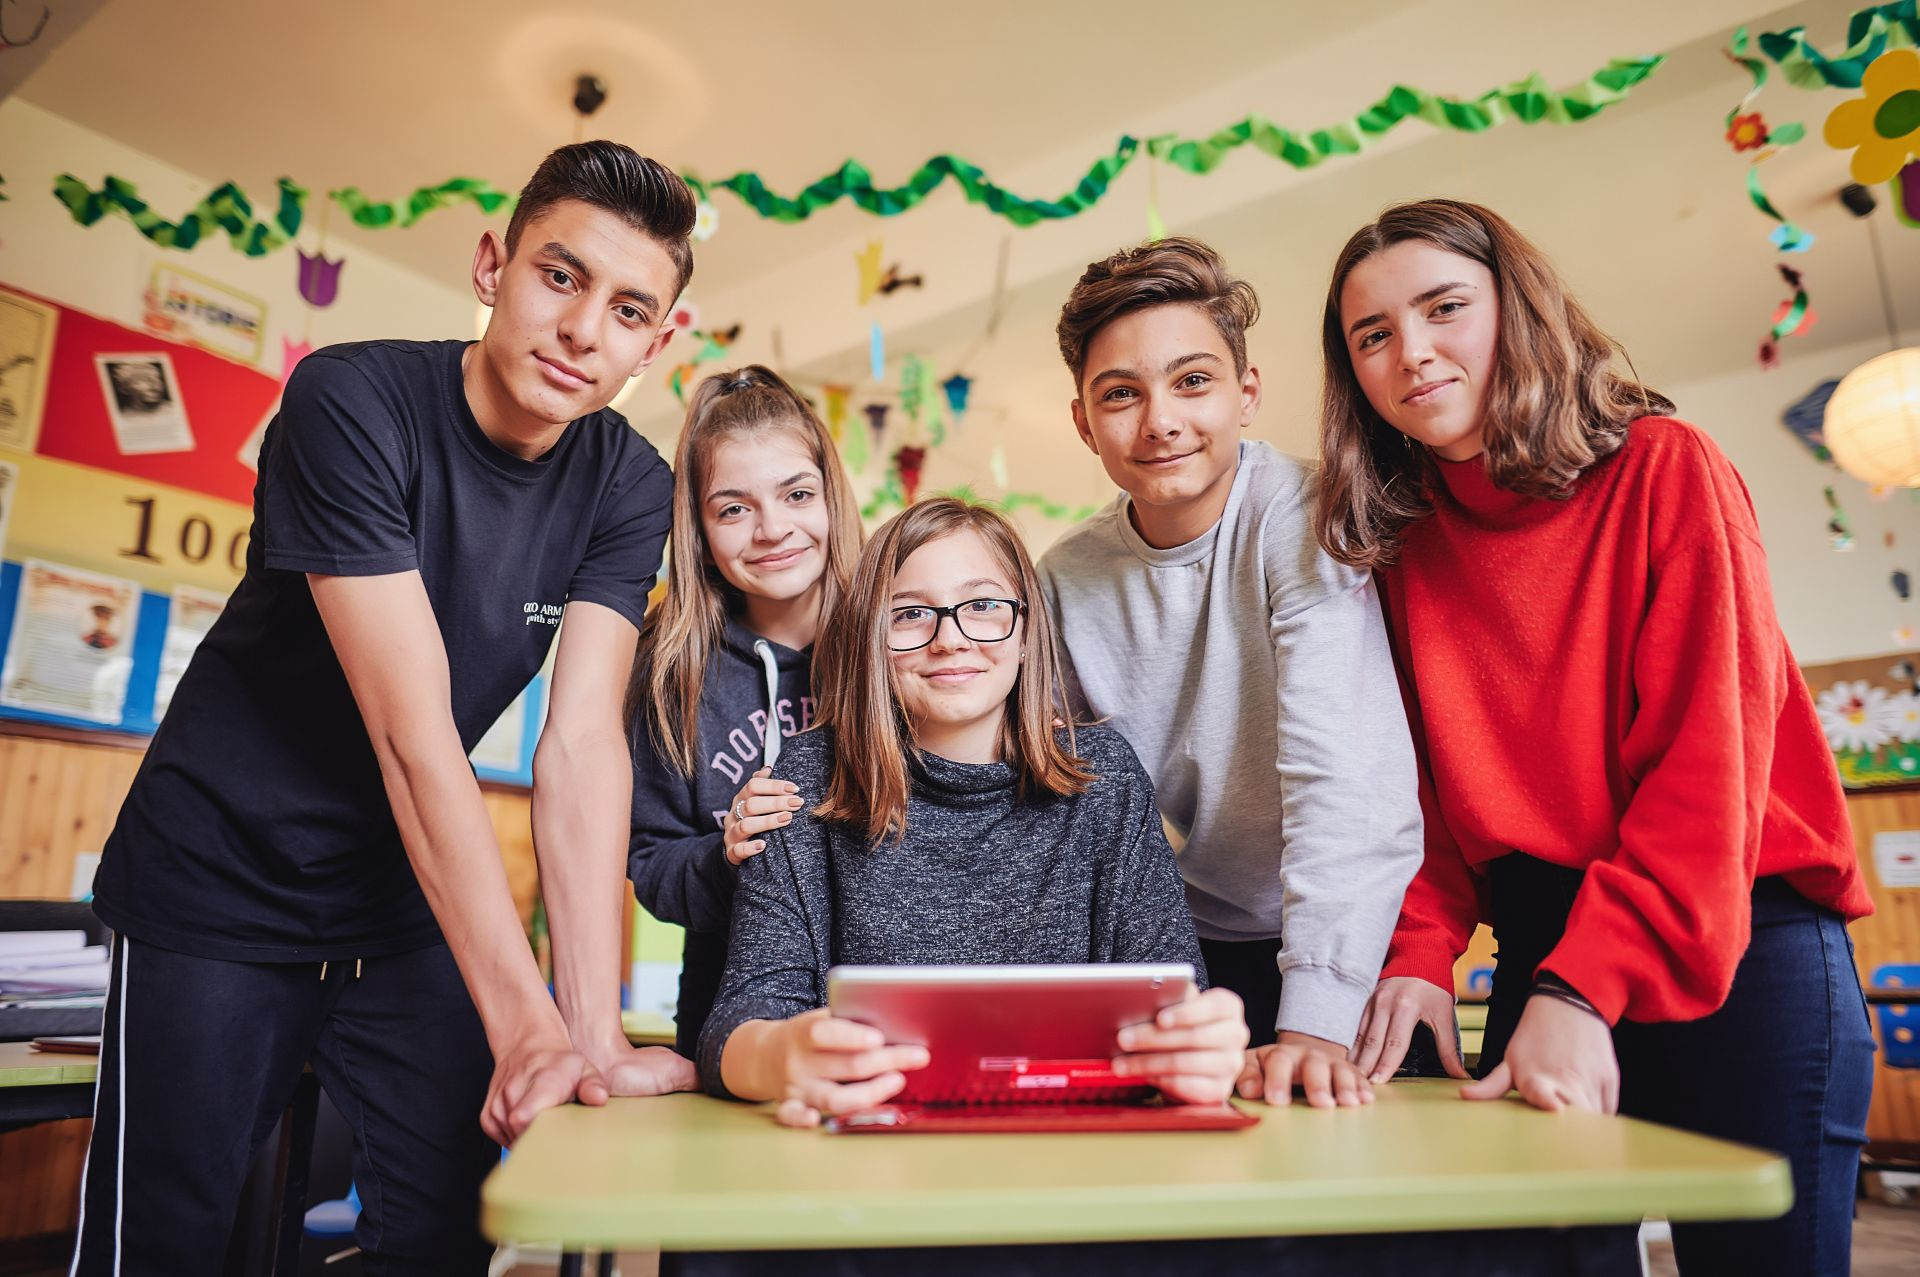 Vodafone invests €20 million to advance digital skills and education across 13 European countries and Turkey